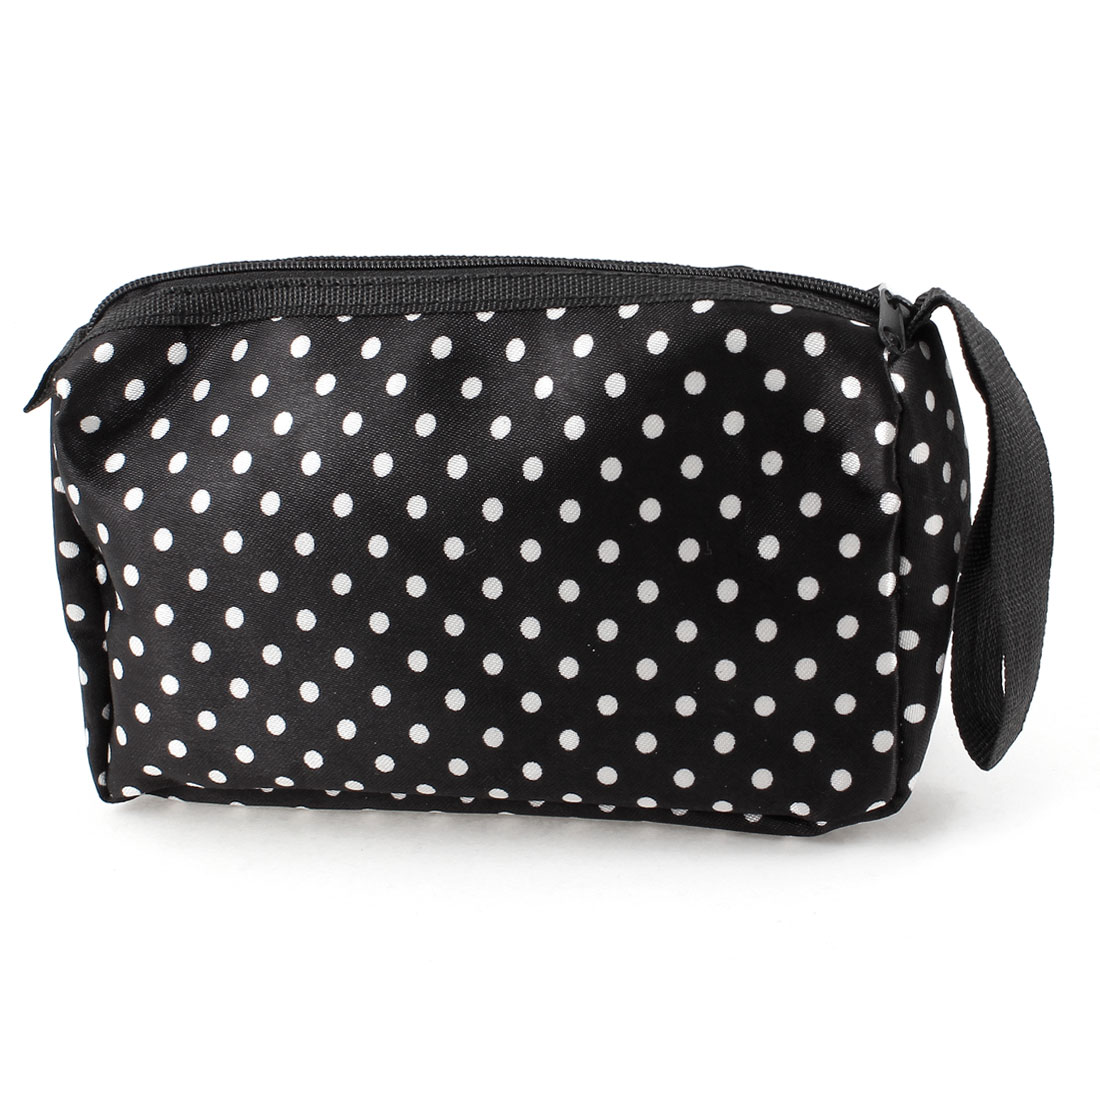 Lady White Dots Printed Pockets Mirror Cosmetic Bag Holder Black